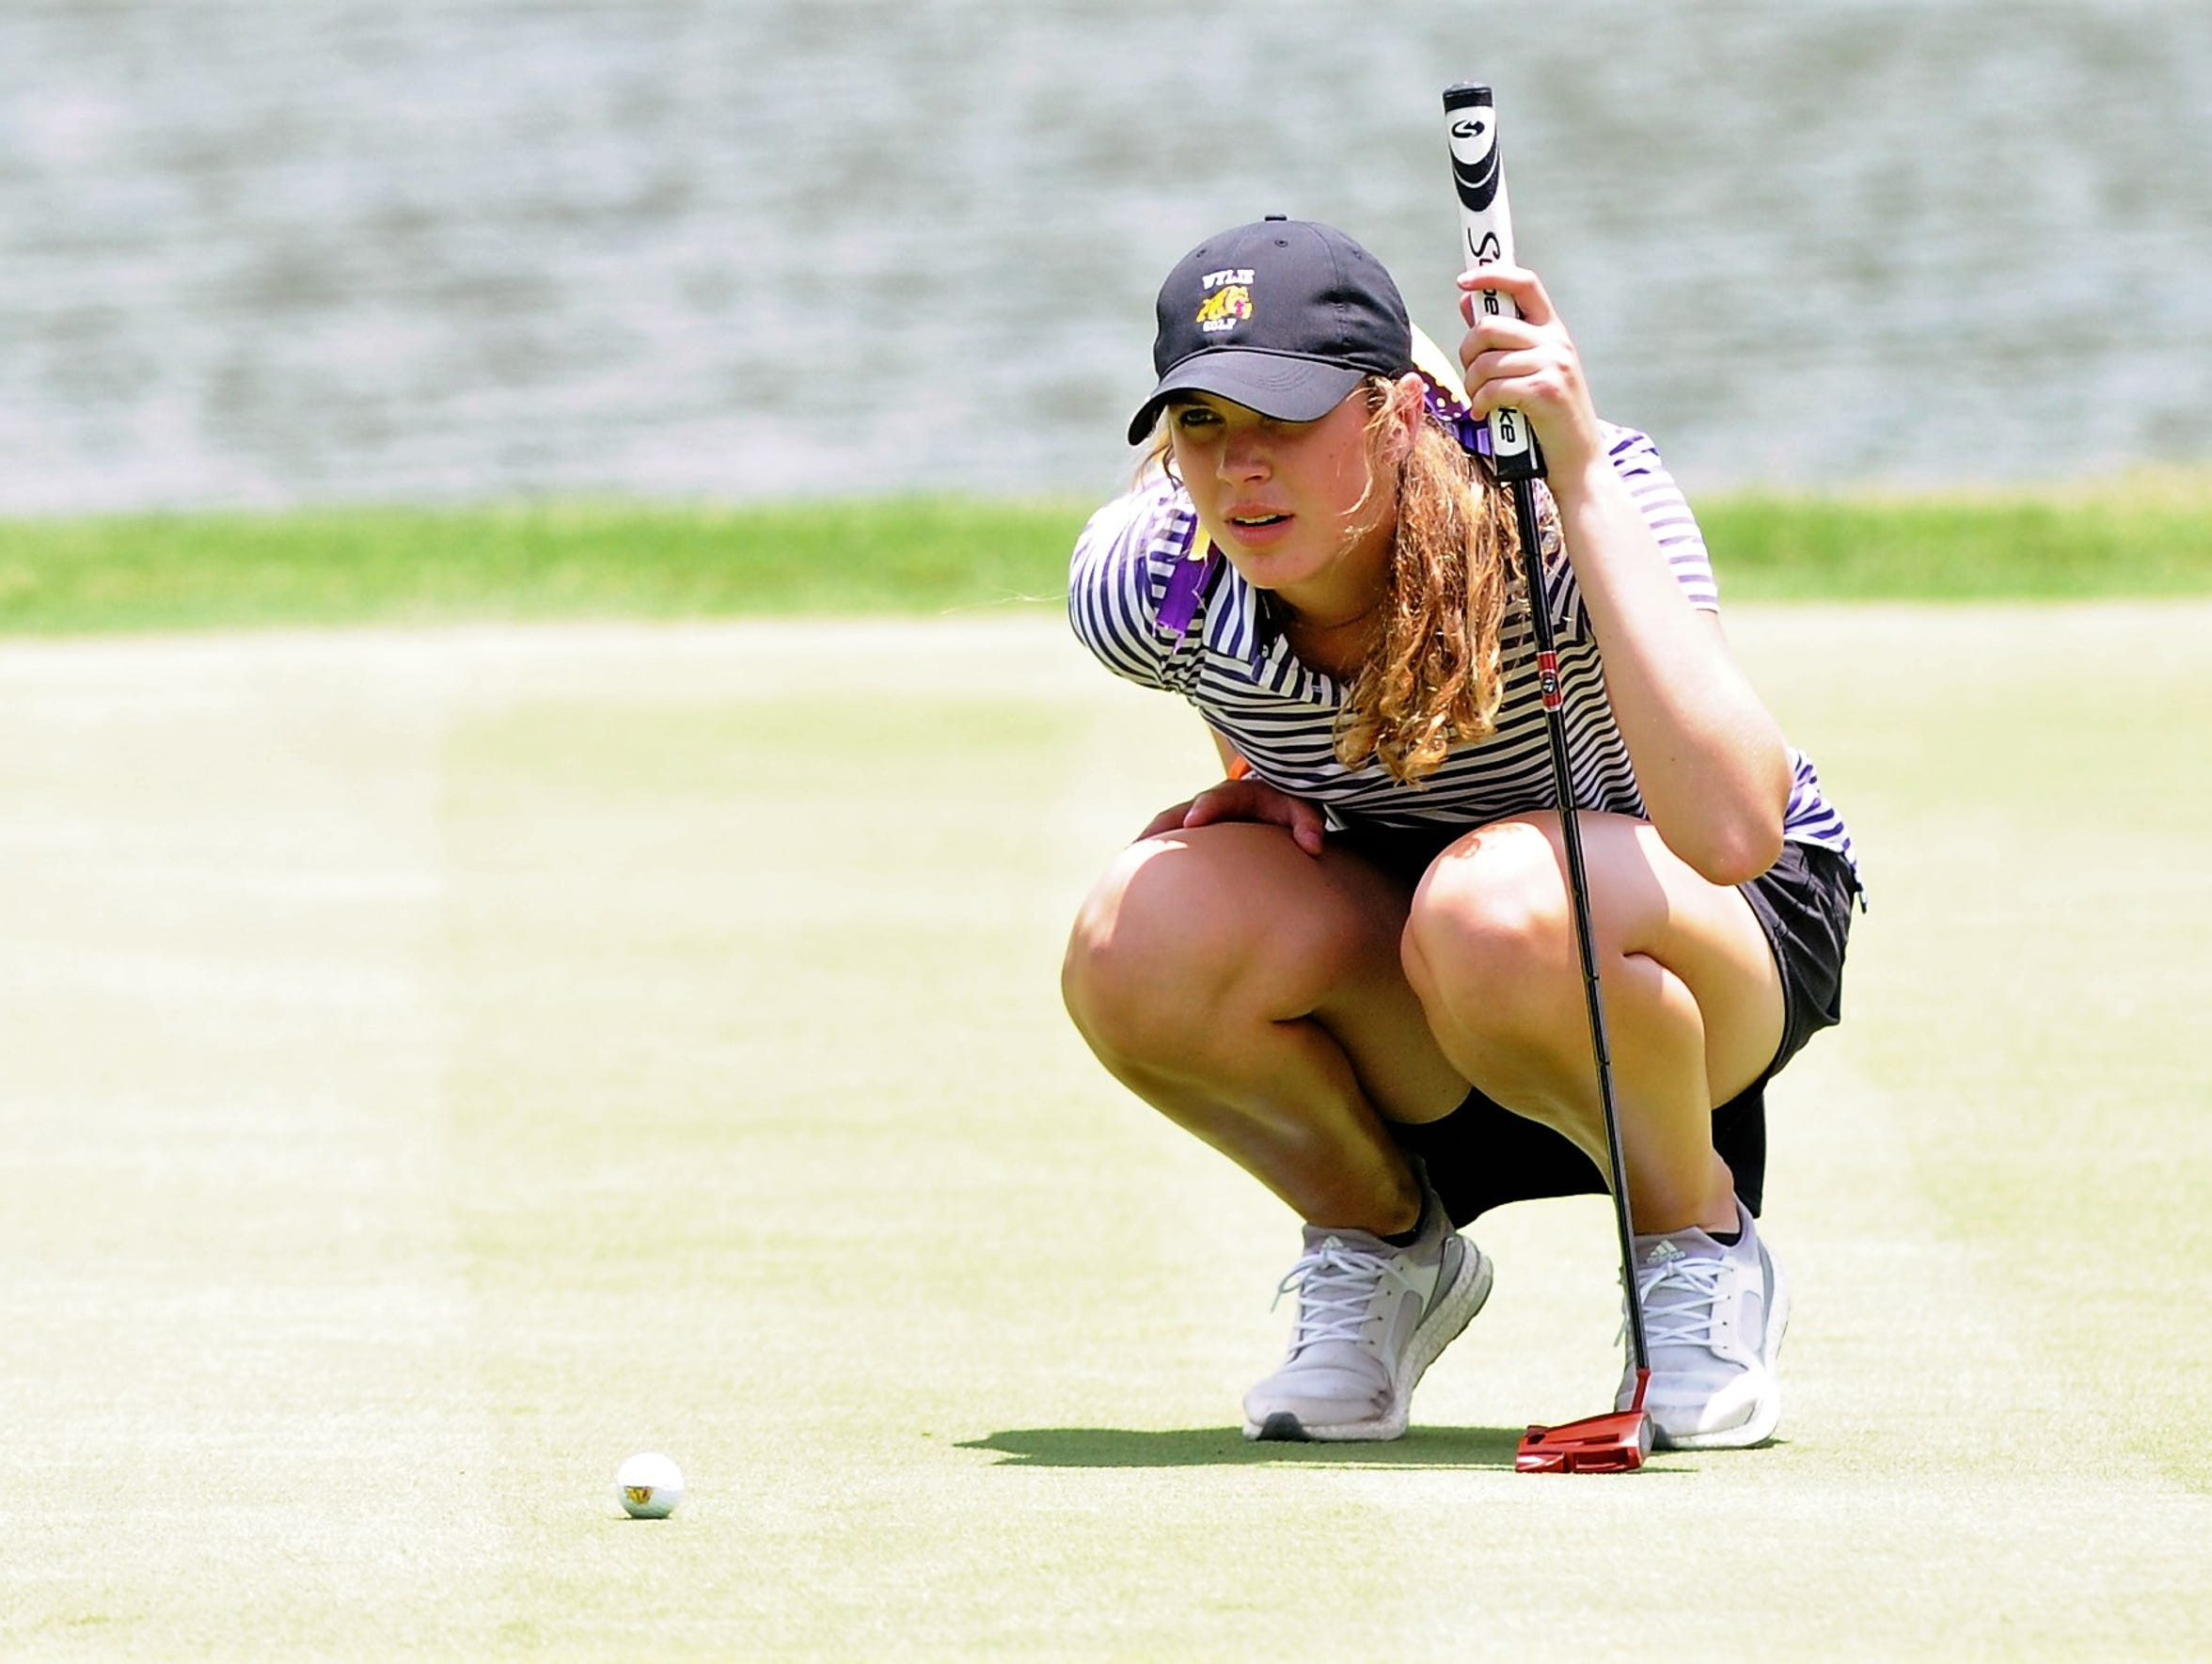 Wylie's Maddi Olson lines up a putt during the second round of the UIL Class 4A state tournament at the Slick Rock Golf Course at Horseshoe Bay in Marble Falls in May.